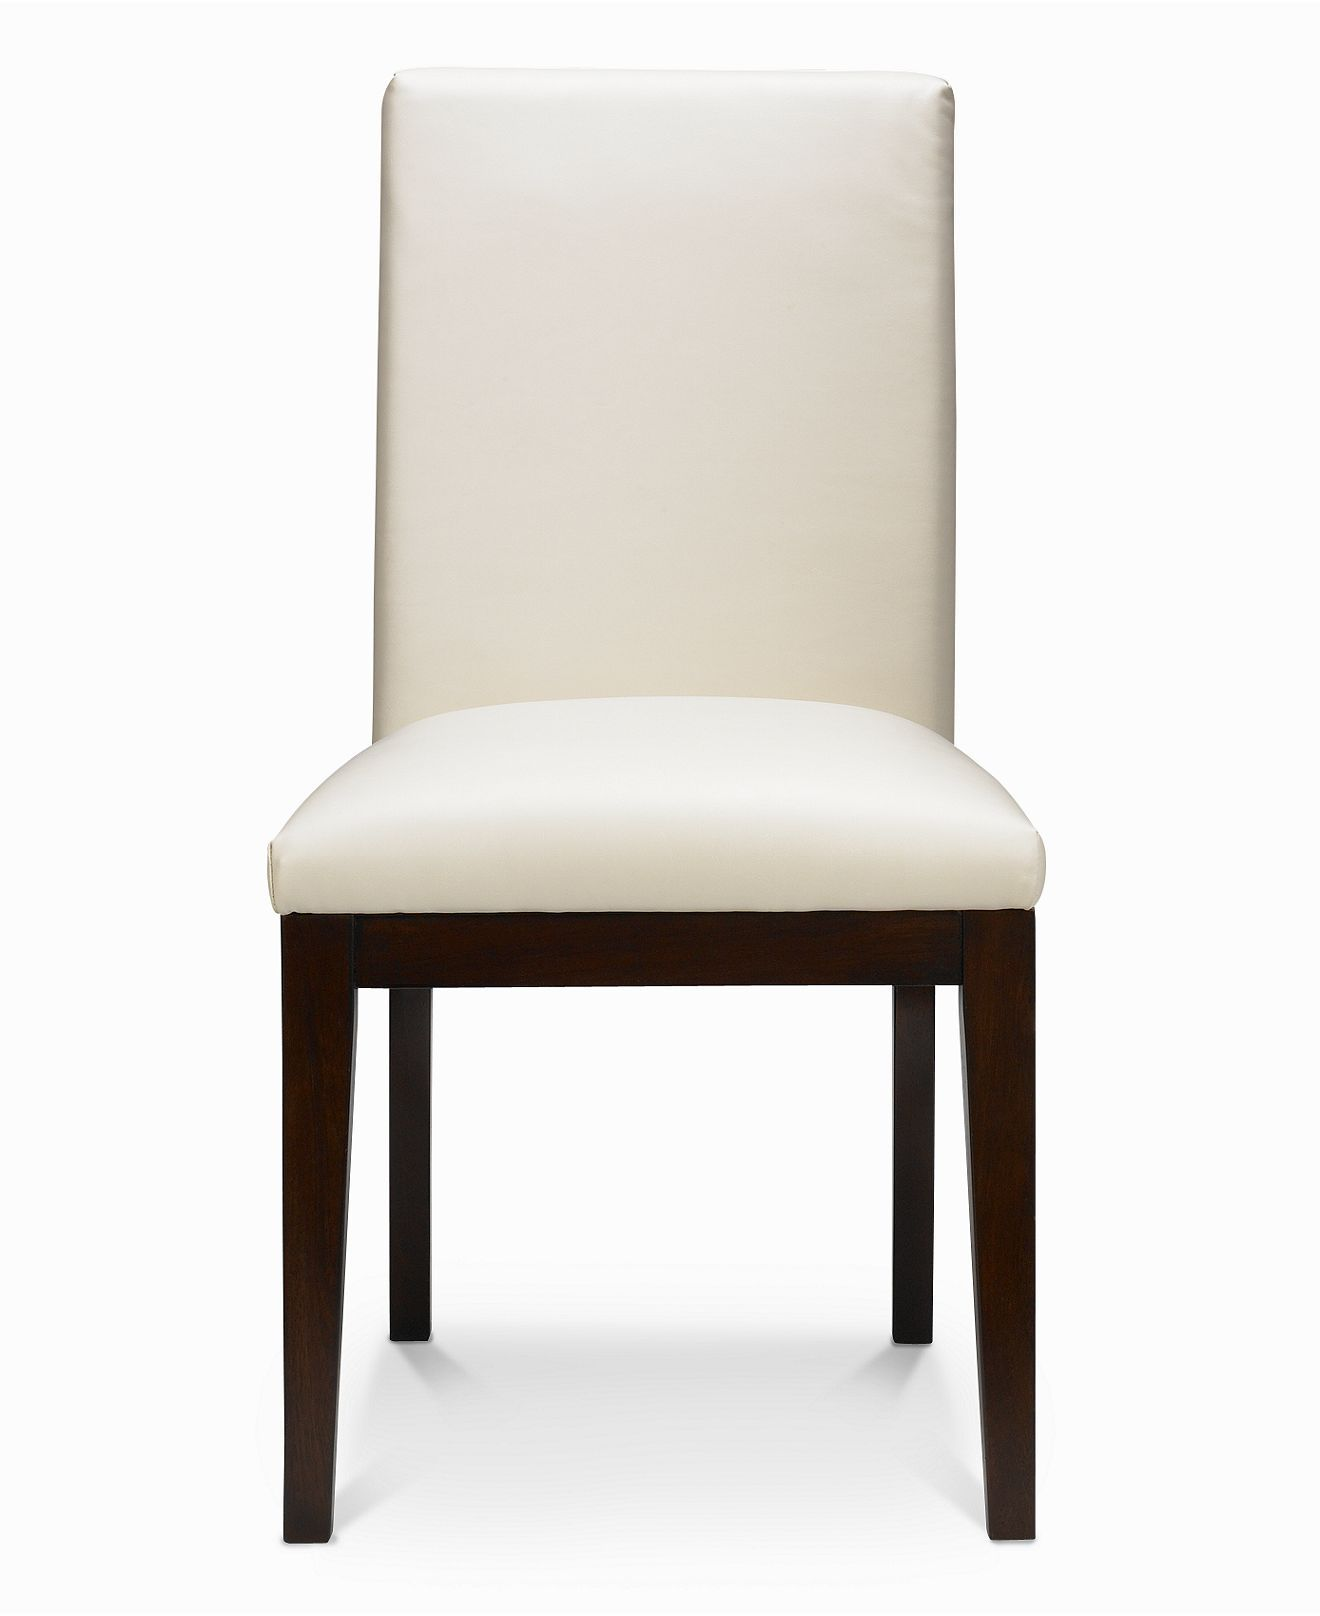 Corso Dining Chair White Leather Furniture Macy S White Leather Furniture Dining Chairs Leather Dining Room Chairs